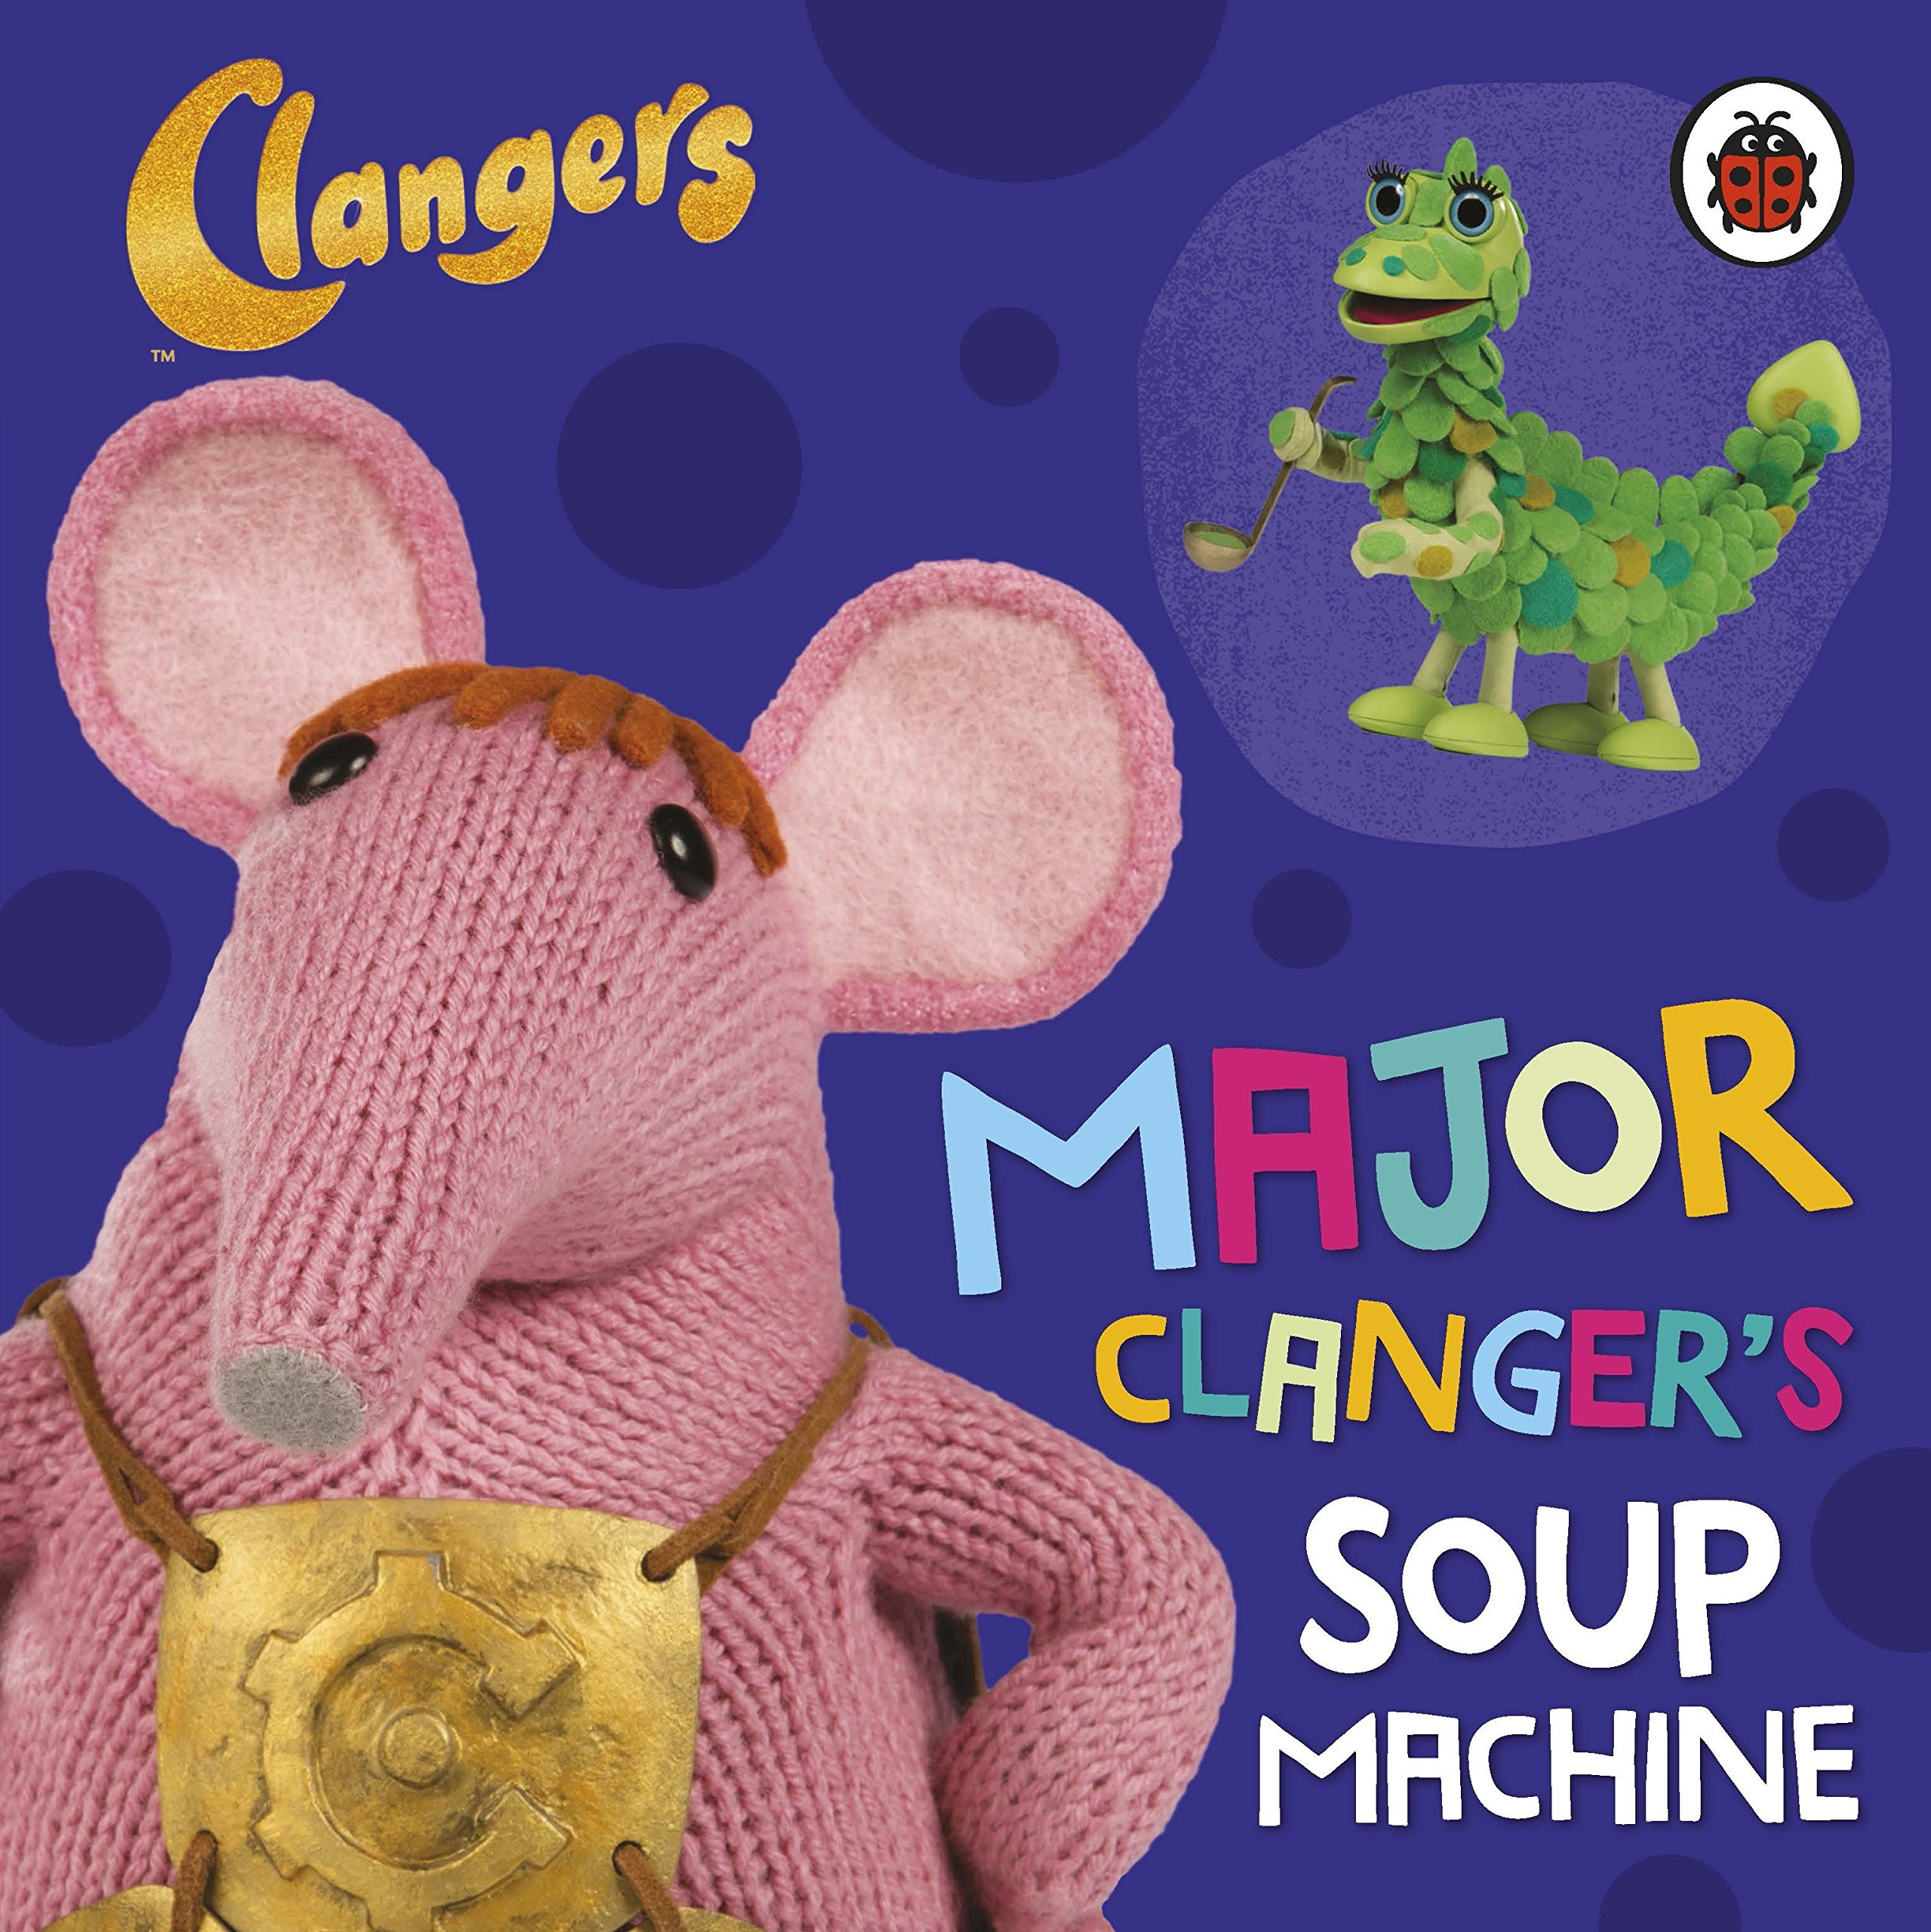 Clangers: Major Clanger\'s Soup Machine: Amazon.co.uk: Ladybird ...